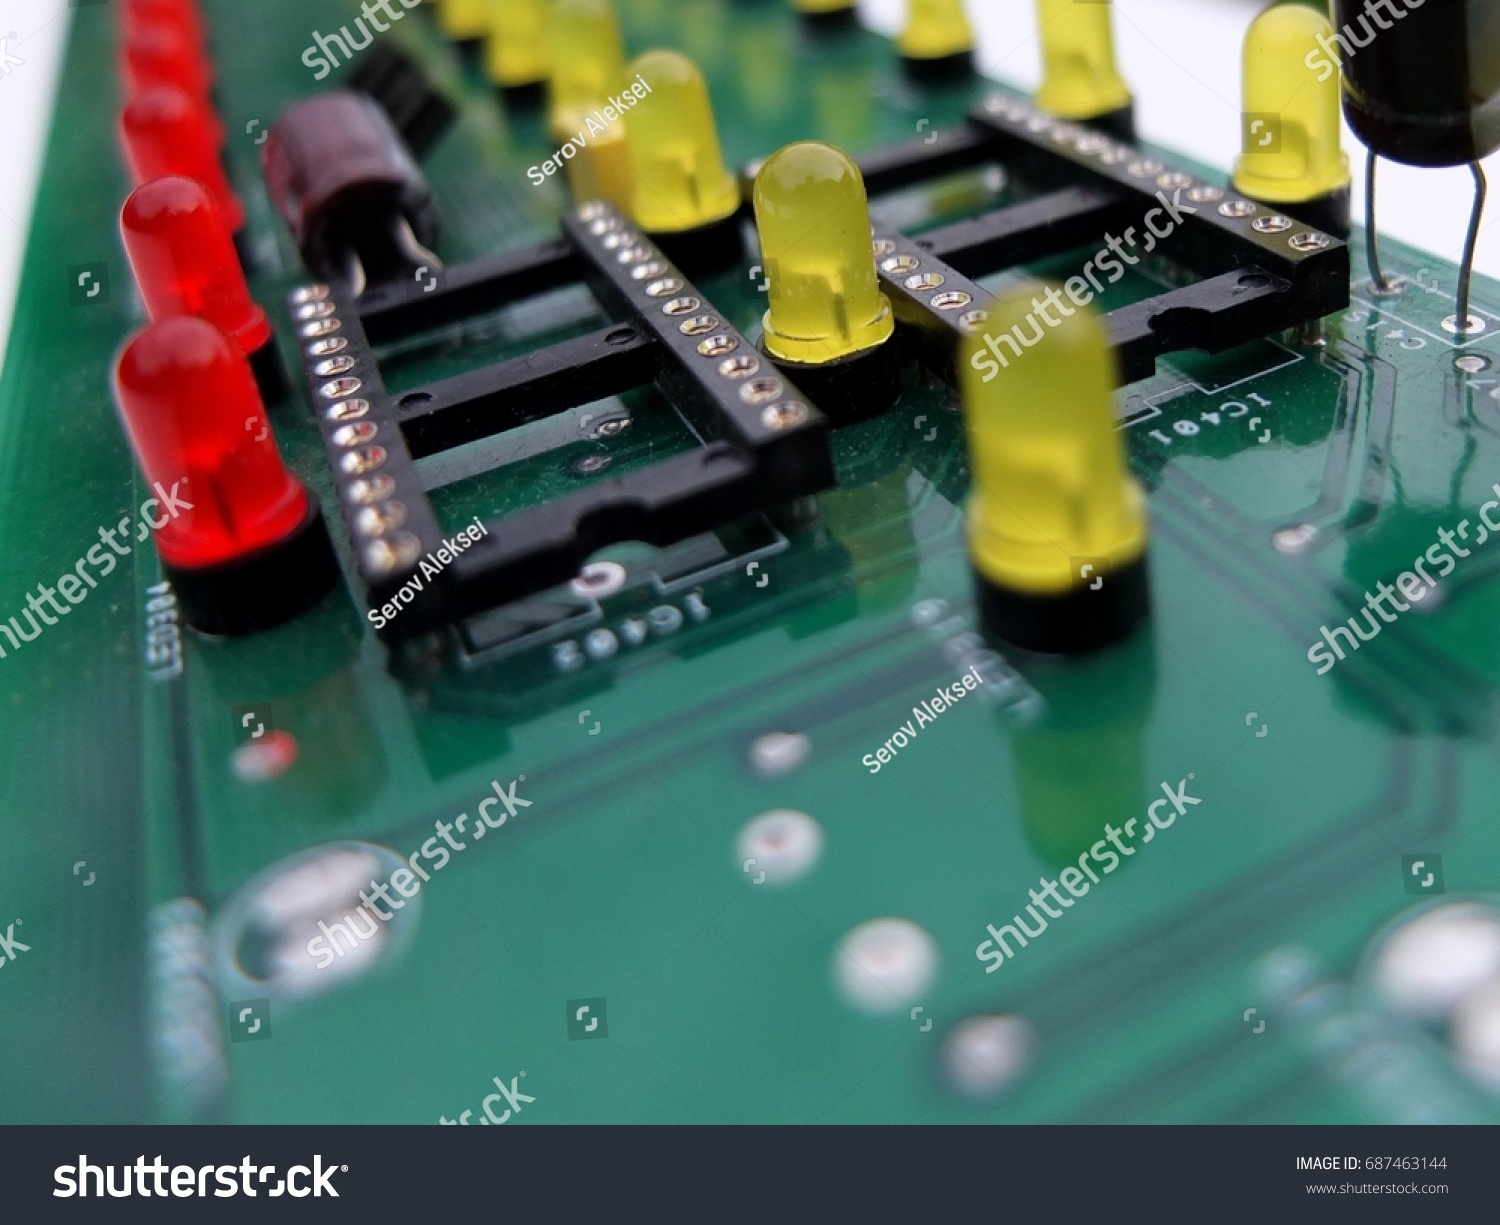 Pcb Plate Lightemitting Diodes Blurred Stock Photo Edit Now Howtoidentifycircuitsymbolslightemittingdiode With Light Emitting